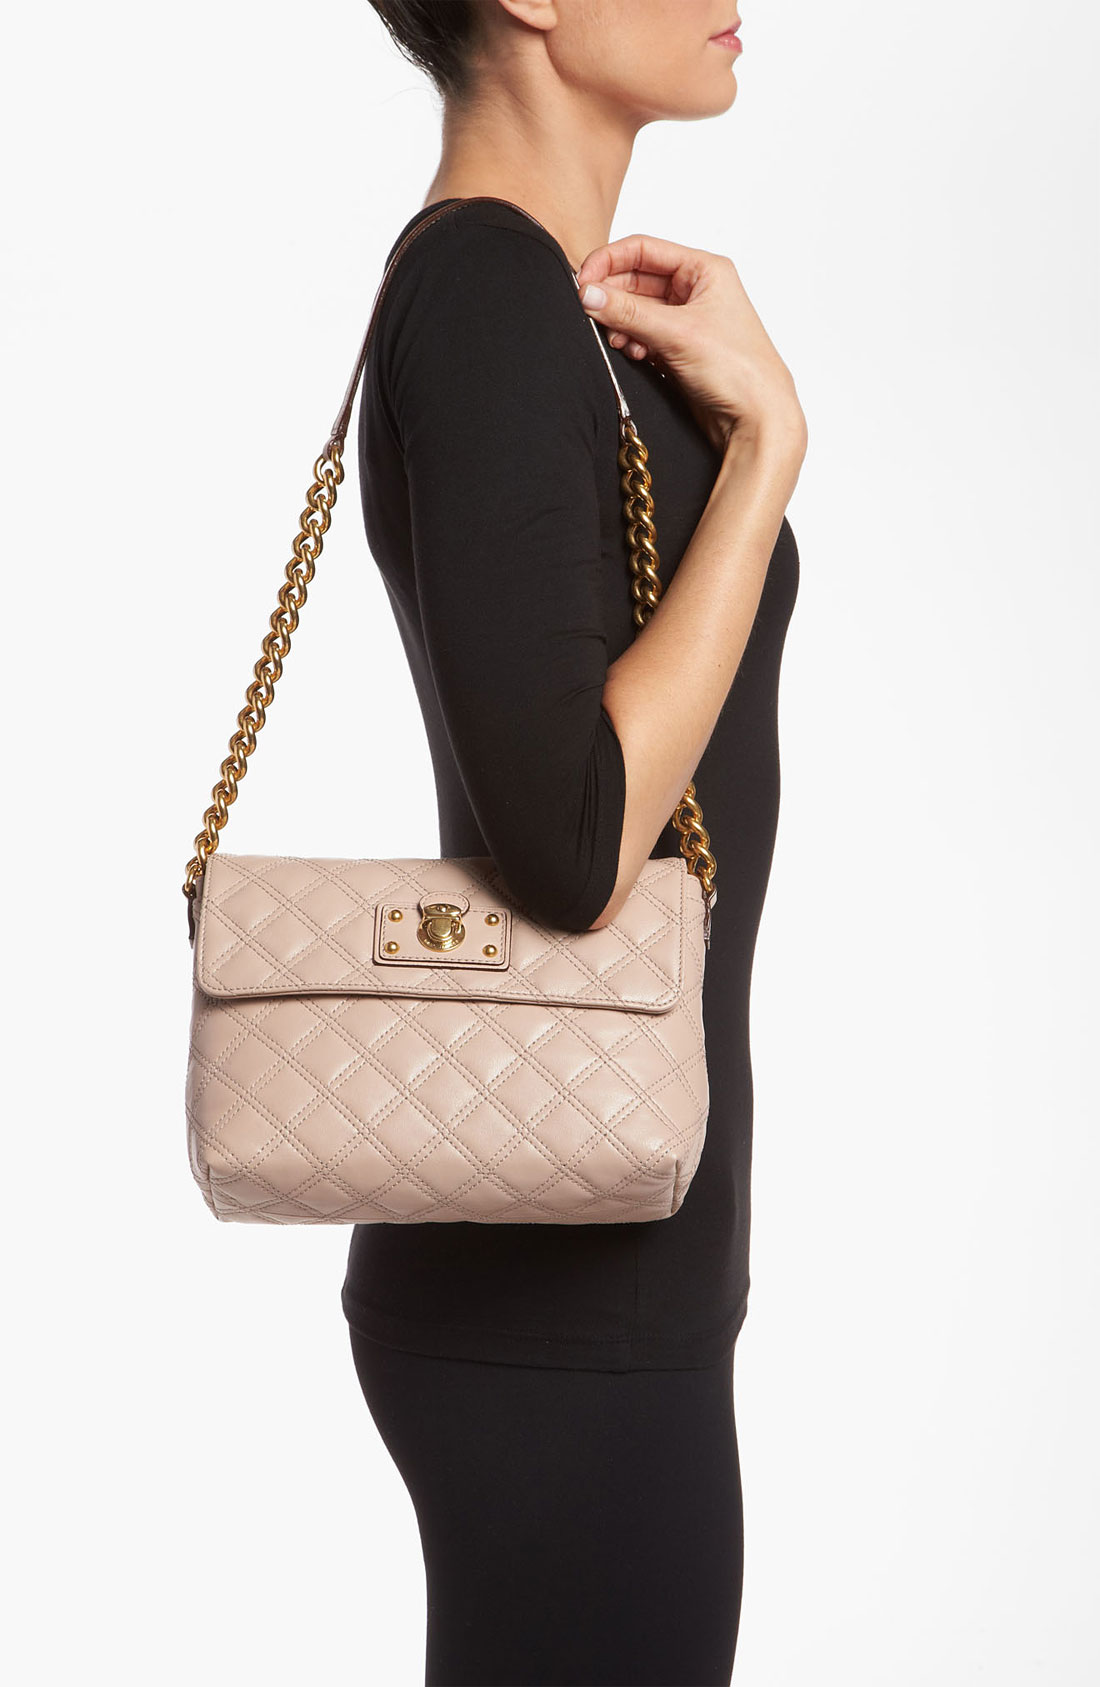 Marc jacobs Quilting Large Single Leather Shoulder Bag in Pink   Lyst : marc jacobs single quilted bag - Adamdwight.com